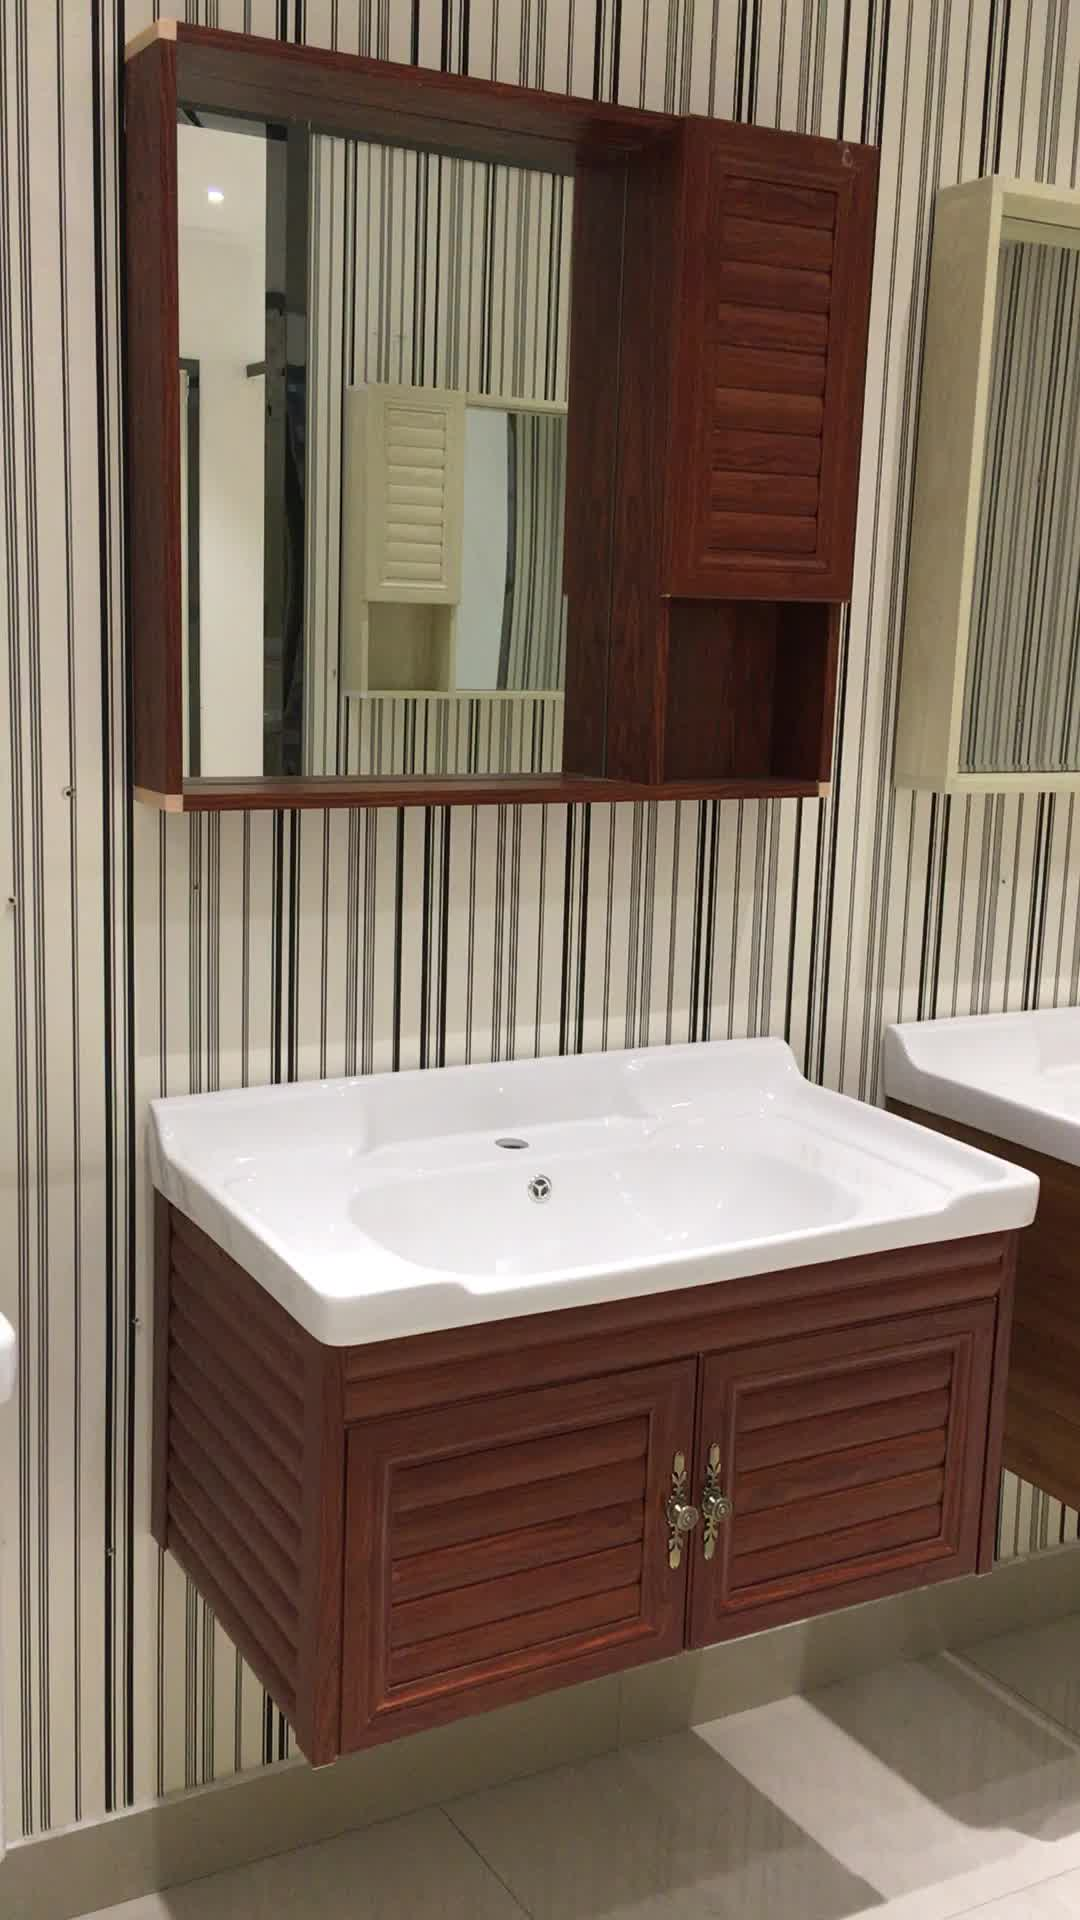 Bathroom cabinets cheapest price aluminium wall mounted - Unique bathroom vanities for small spaces ...